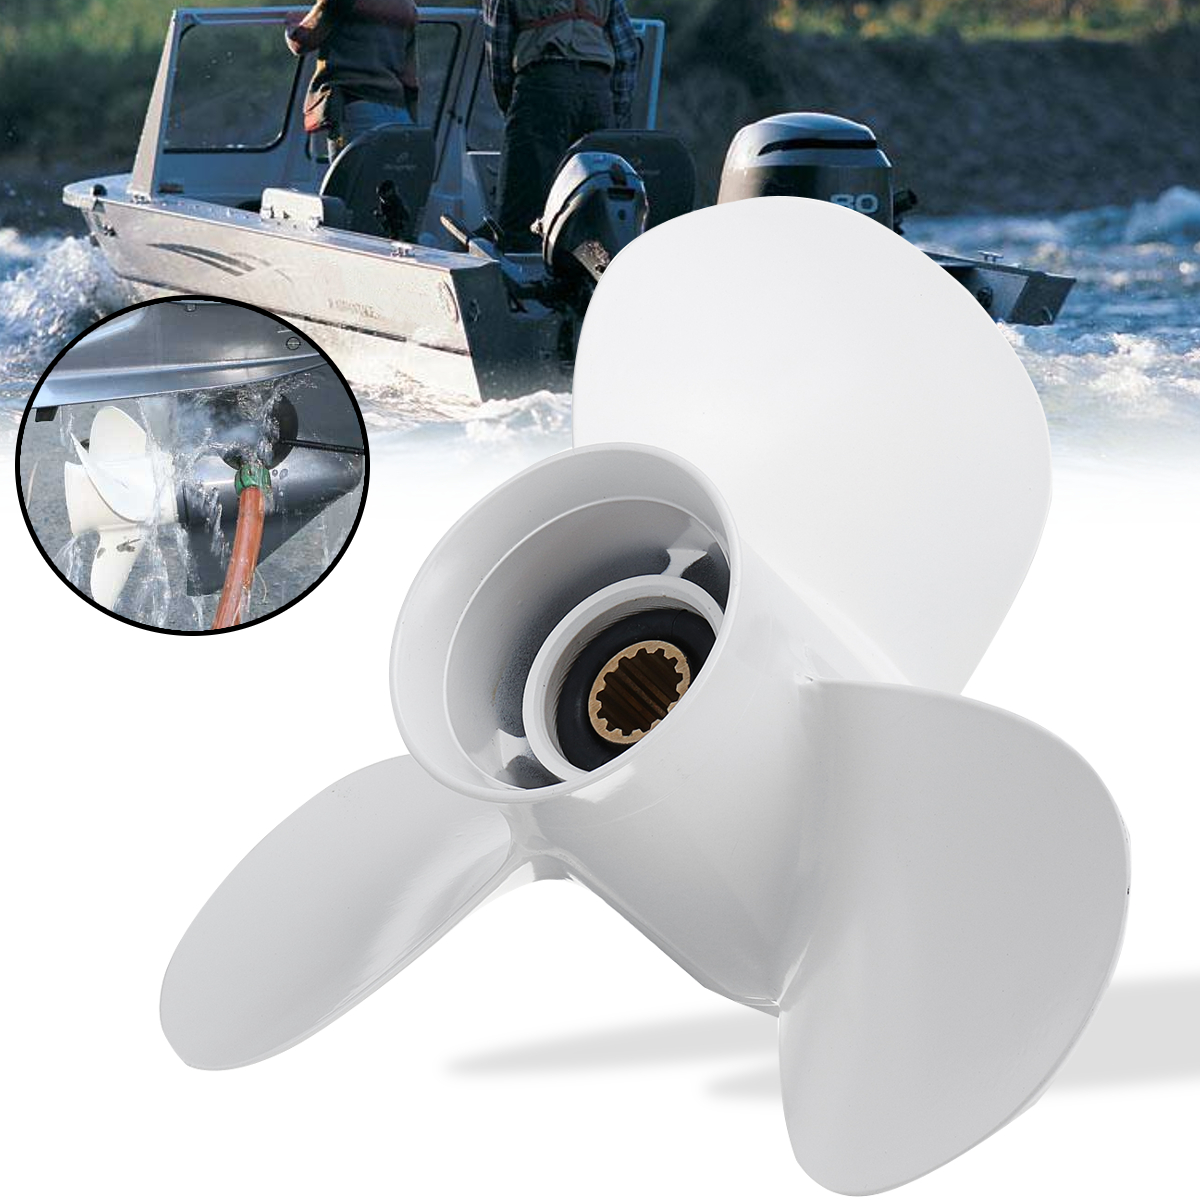 663-45958-01-EL For Yamaha 25-60HP 11 1/4 x 14 Boat Outboard Propeller Aluminum White Diameter 286mm 3 Blades 13 Spline Tooths цены онлайн